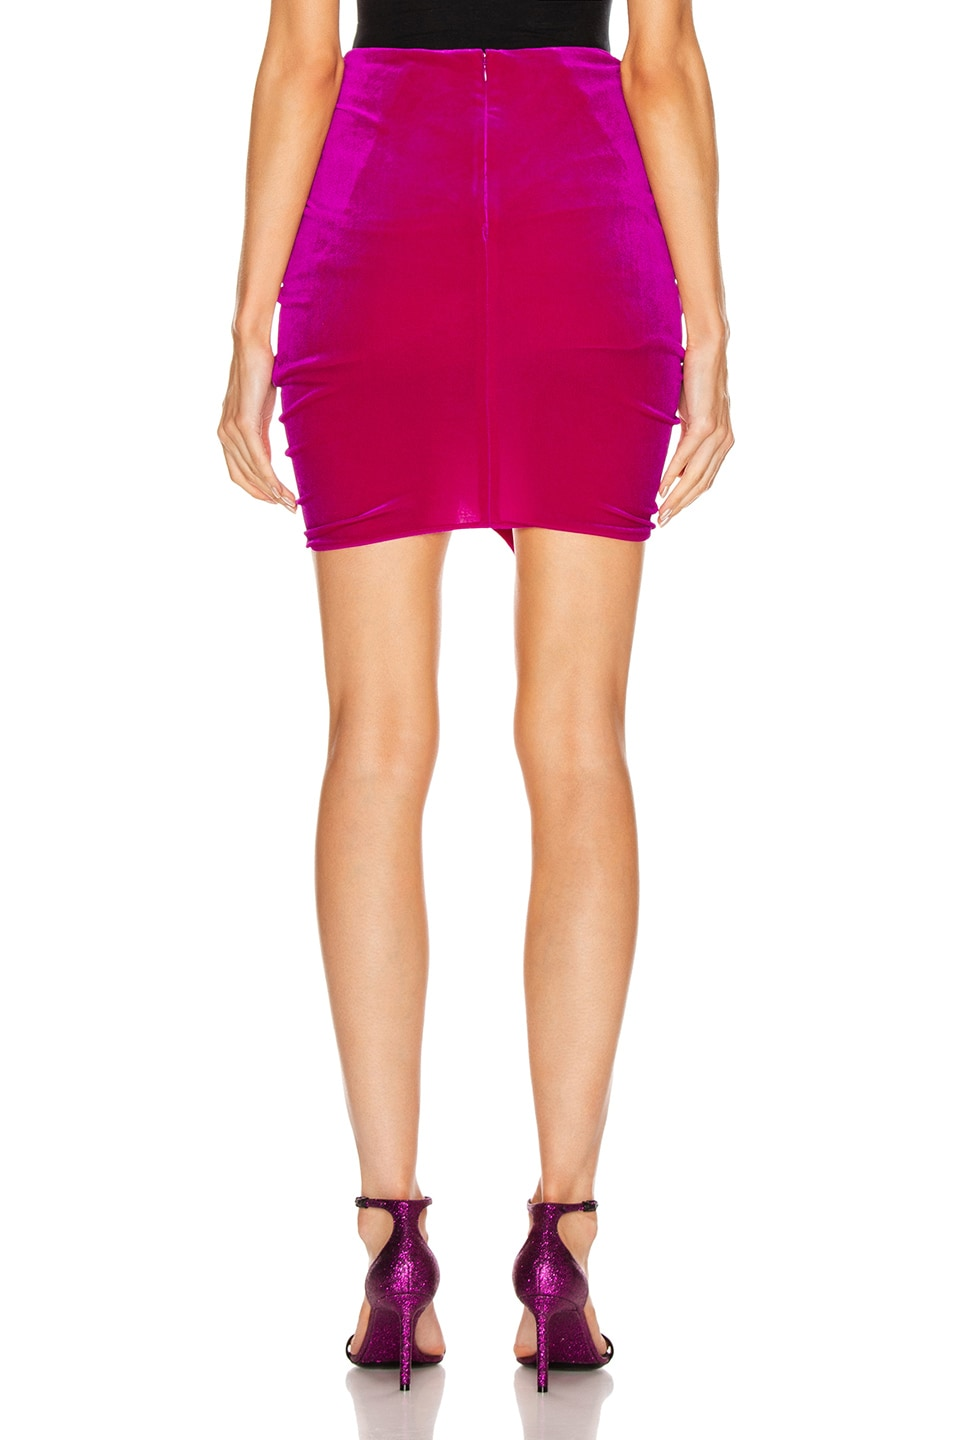 Image 3 of Alexandre Vauthier for FWRD Ruched Velvet Mini Skirt in Fuchsia